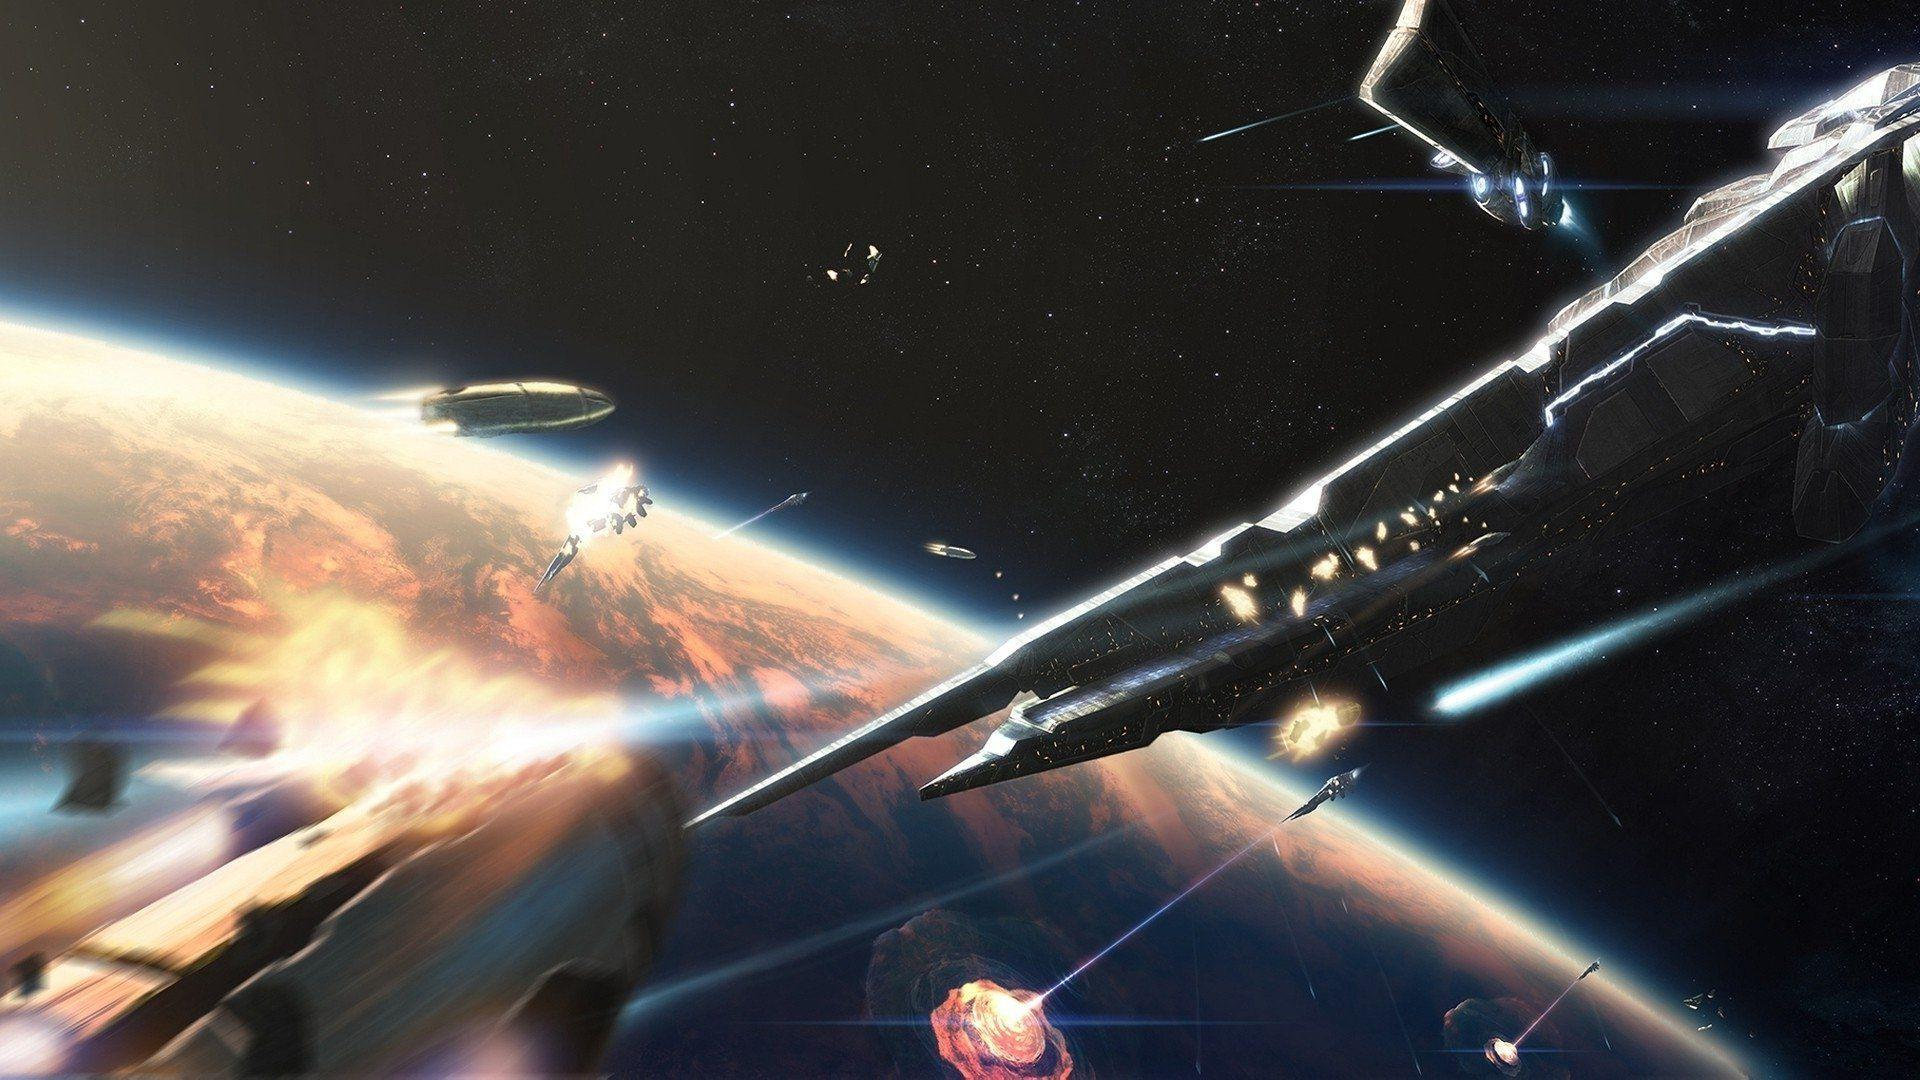 Download Space Battle Wallpapers